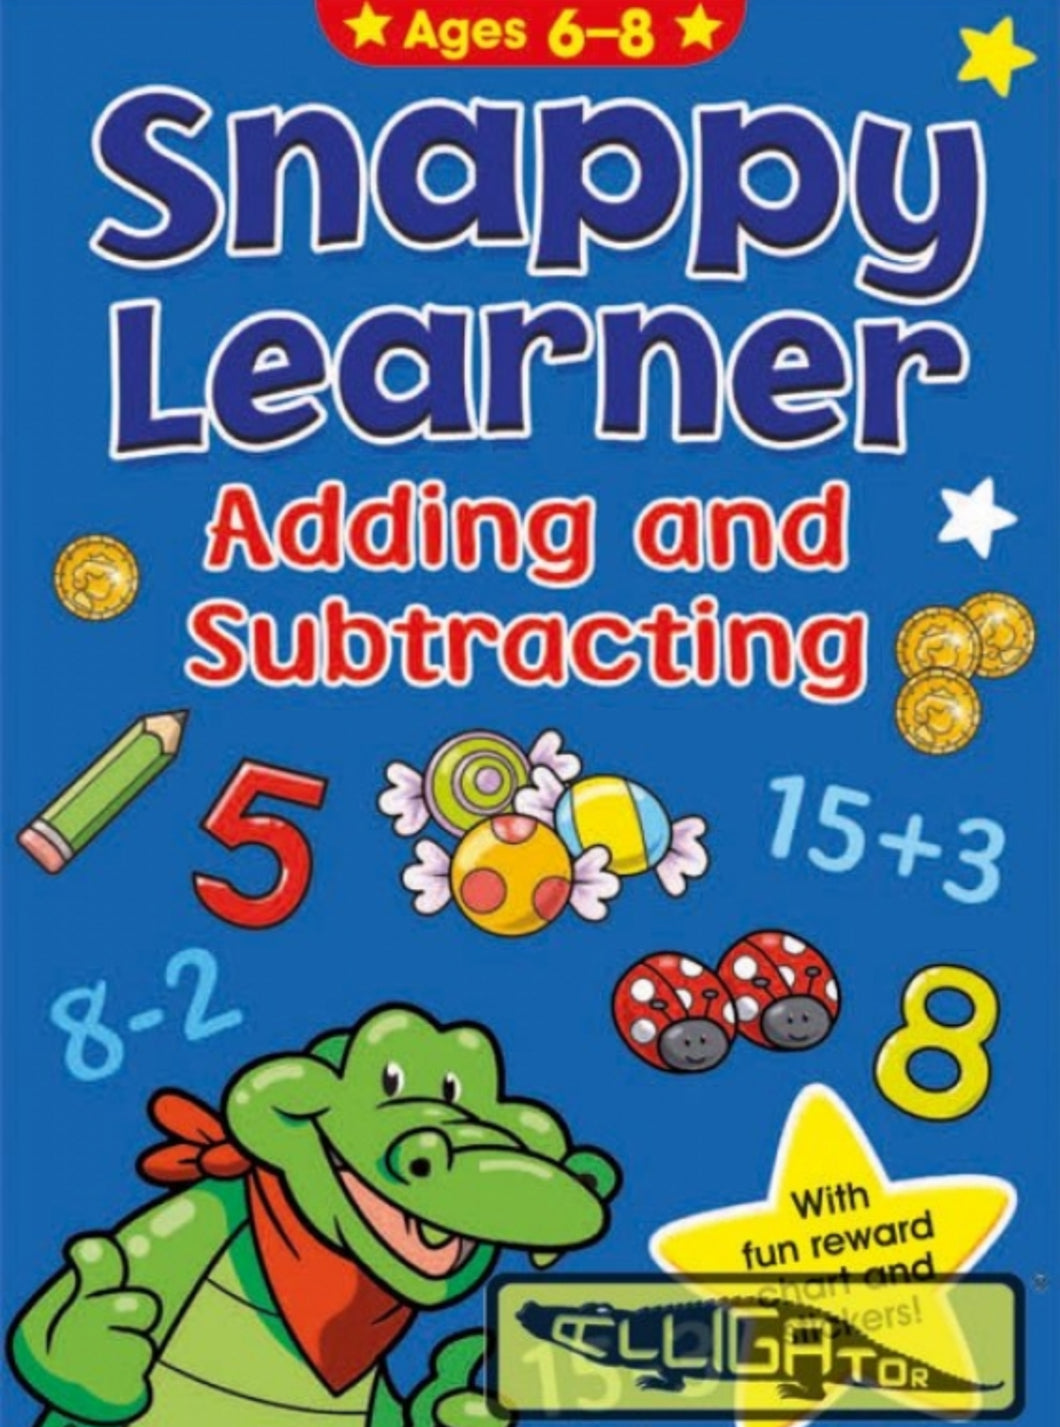 SNAPPY LEARNERS ADDING AND SUBTRACTING